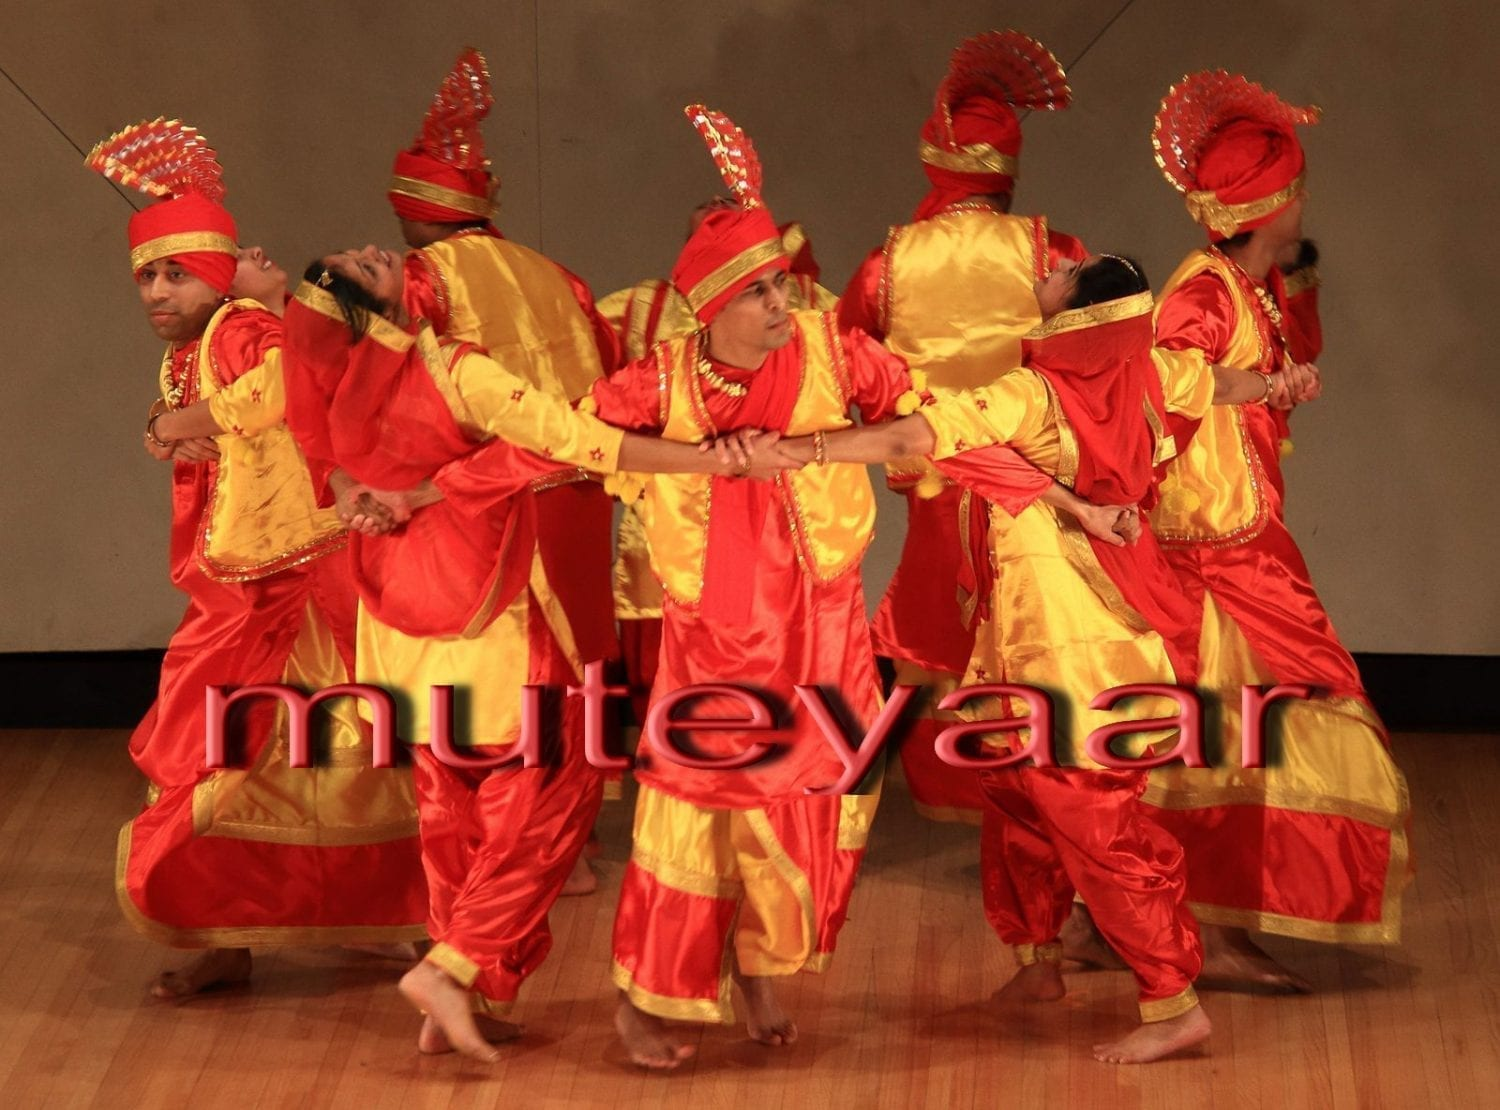 Red / Yellow Bhangra dance costume outfit dress - custom made 2